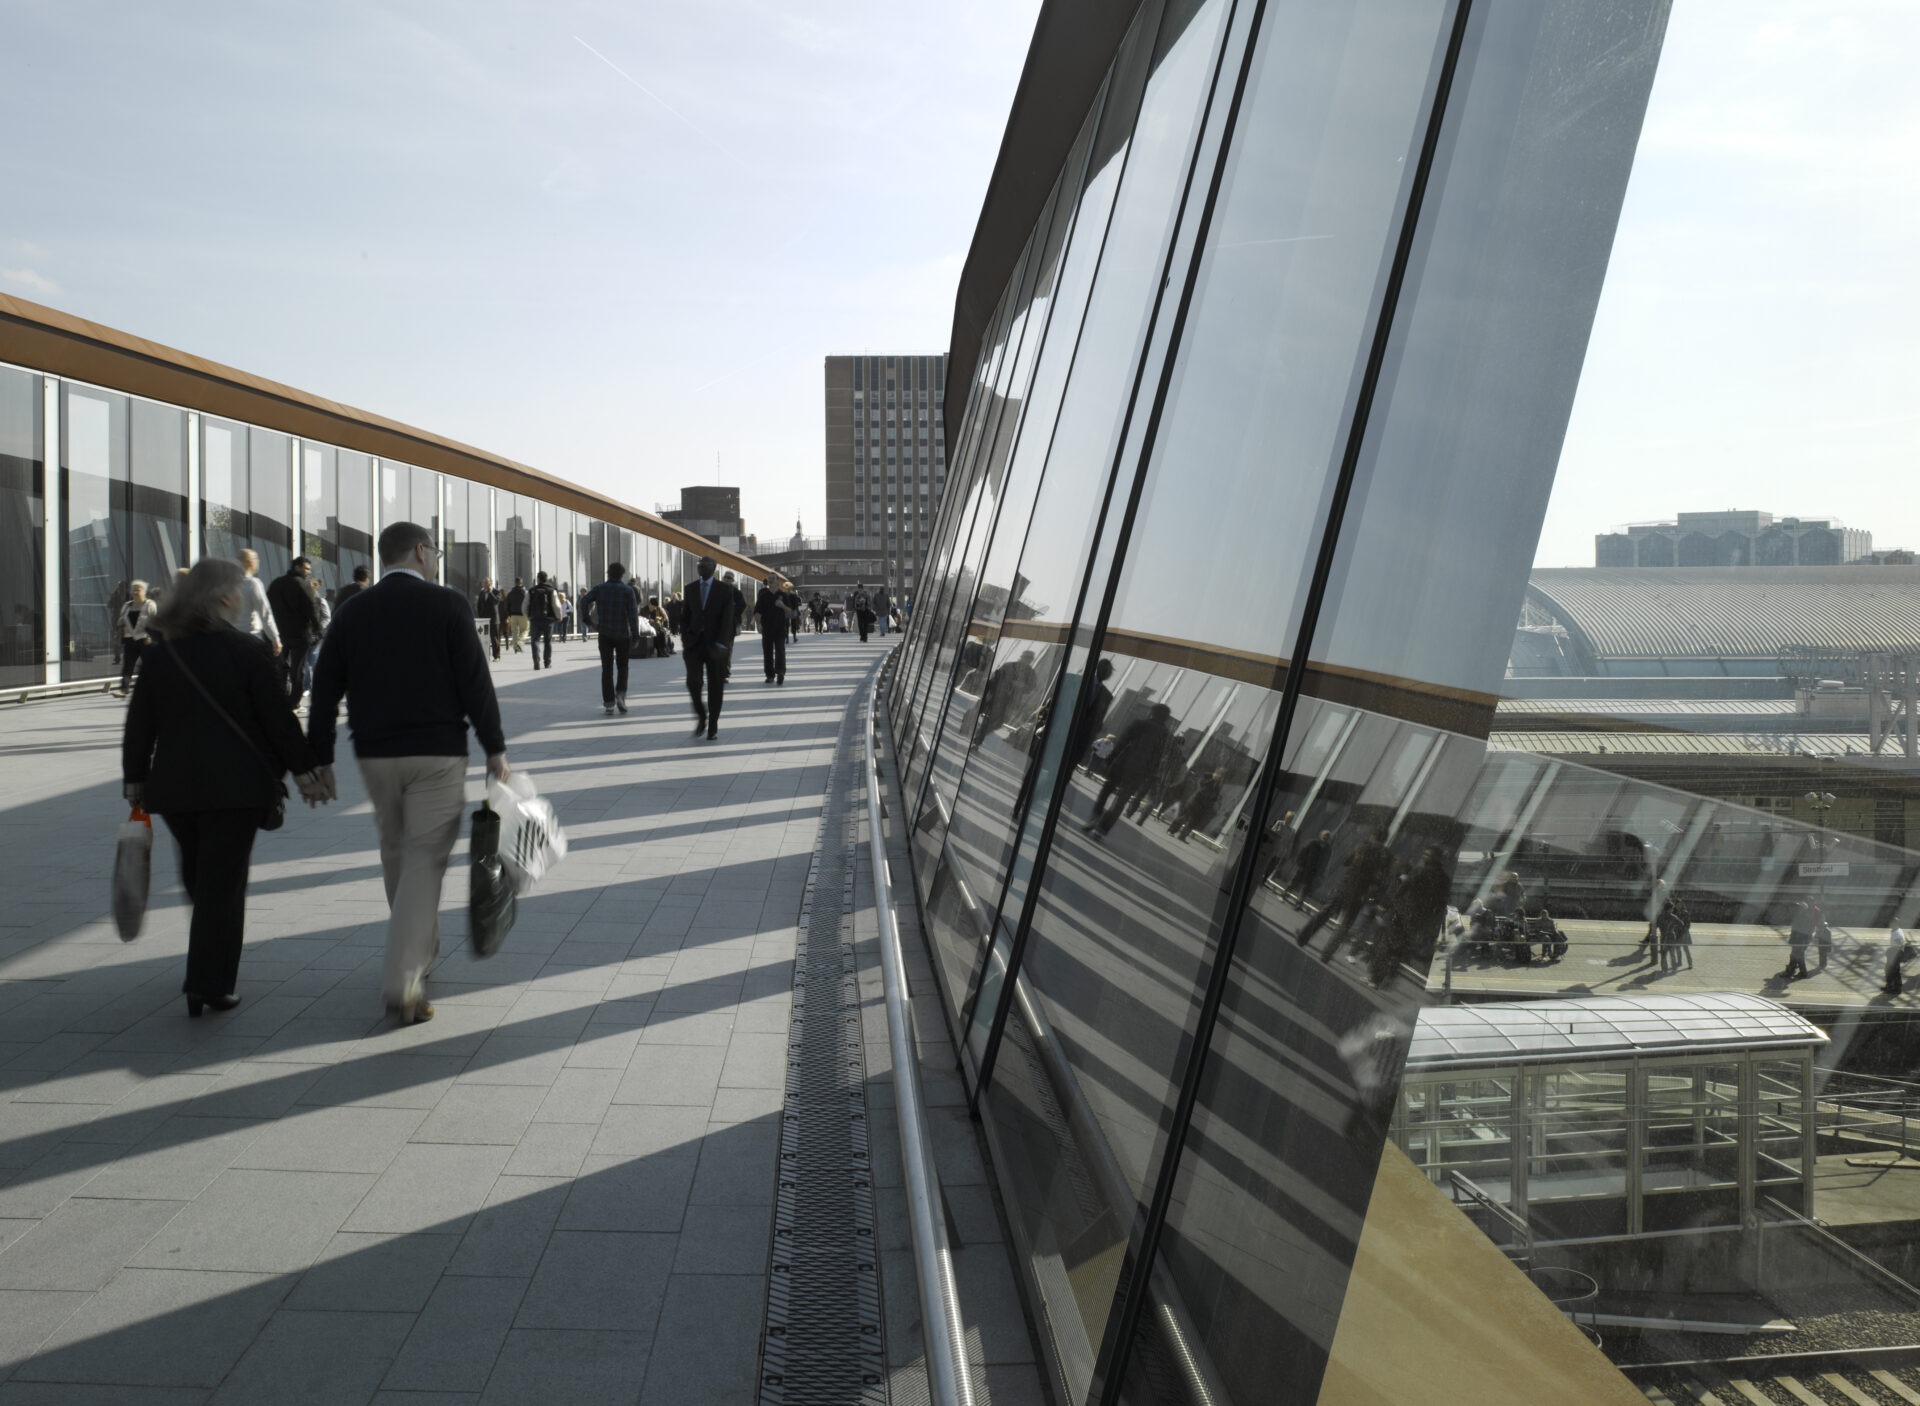 Reflection in the glass of the parapet of people walking across Town Centre Link Bridge at Westfield, Stratford